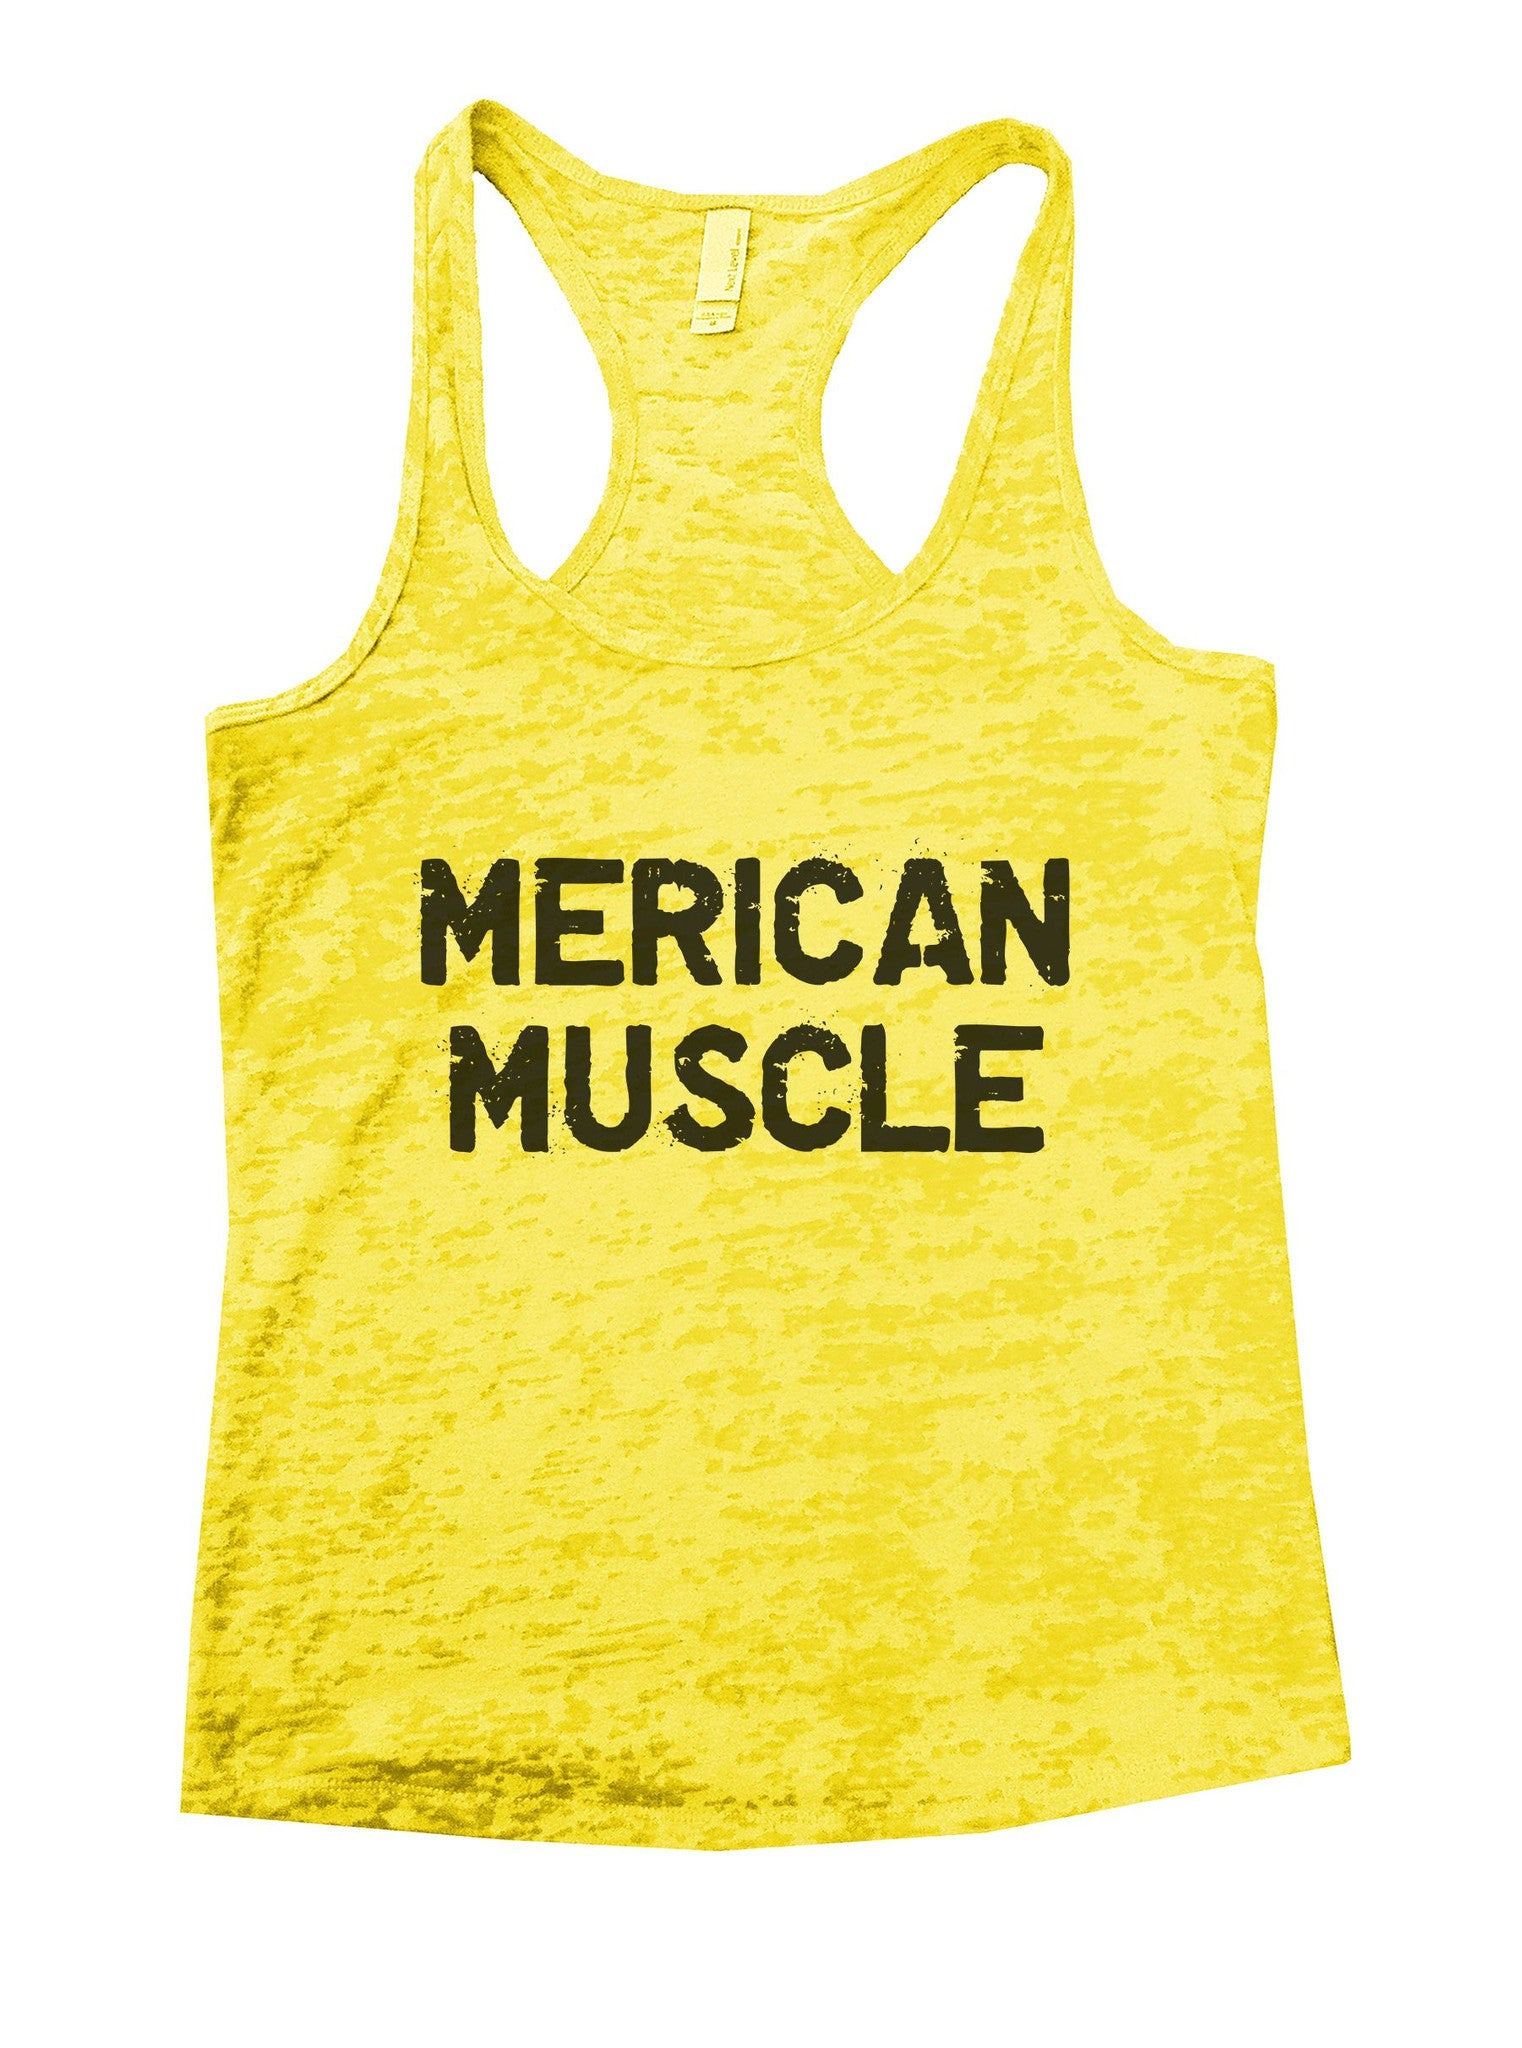 Merican Muscle Burnout Tank Top By BurnoutTankTops.com - 1022 - Funny Shirts Tank Tops Burnouts and Triblends  - 7